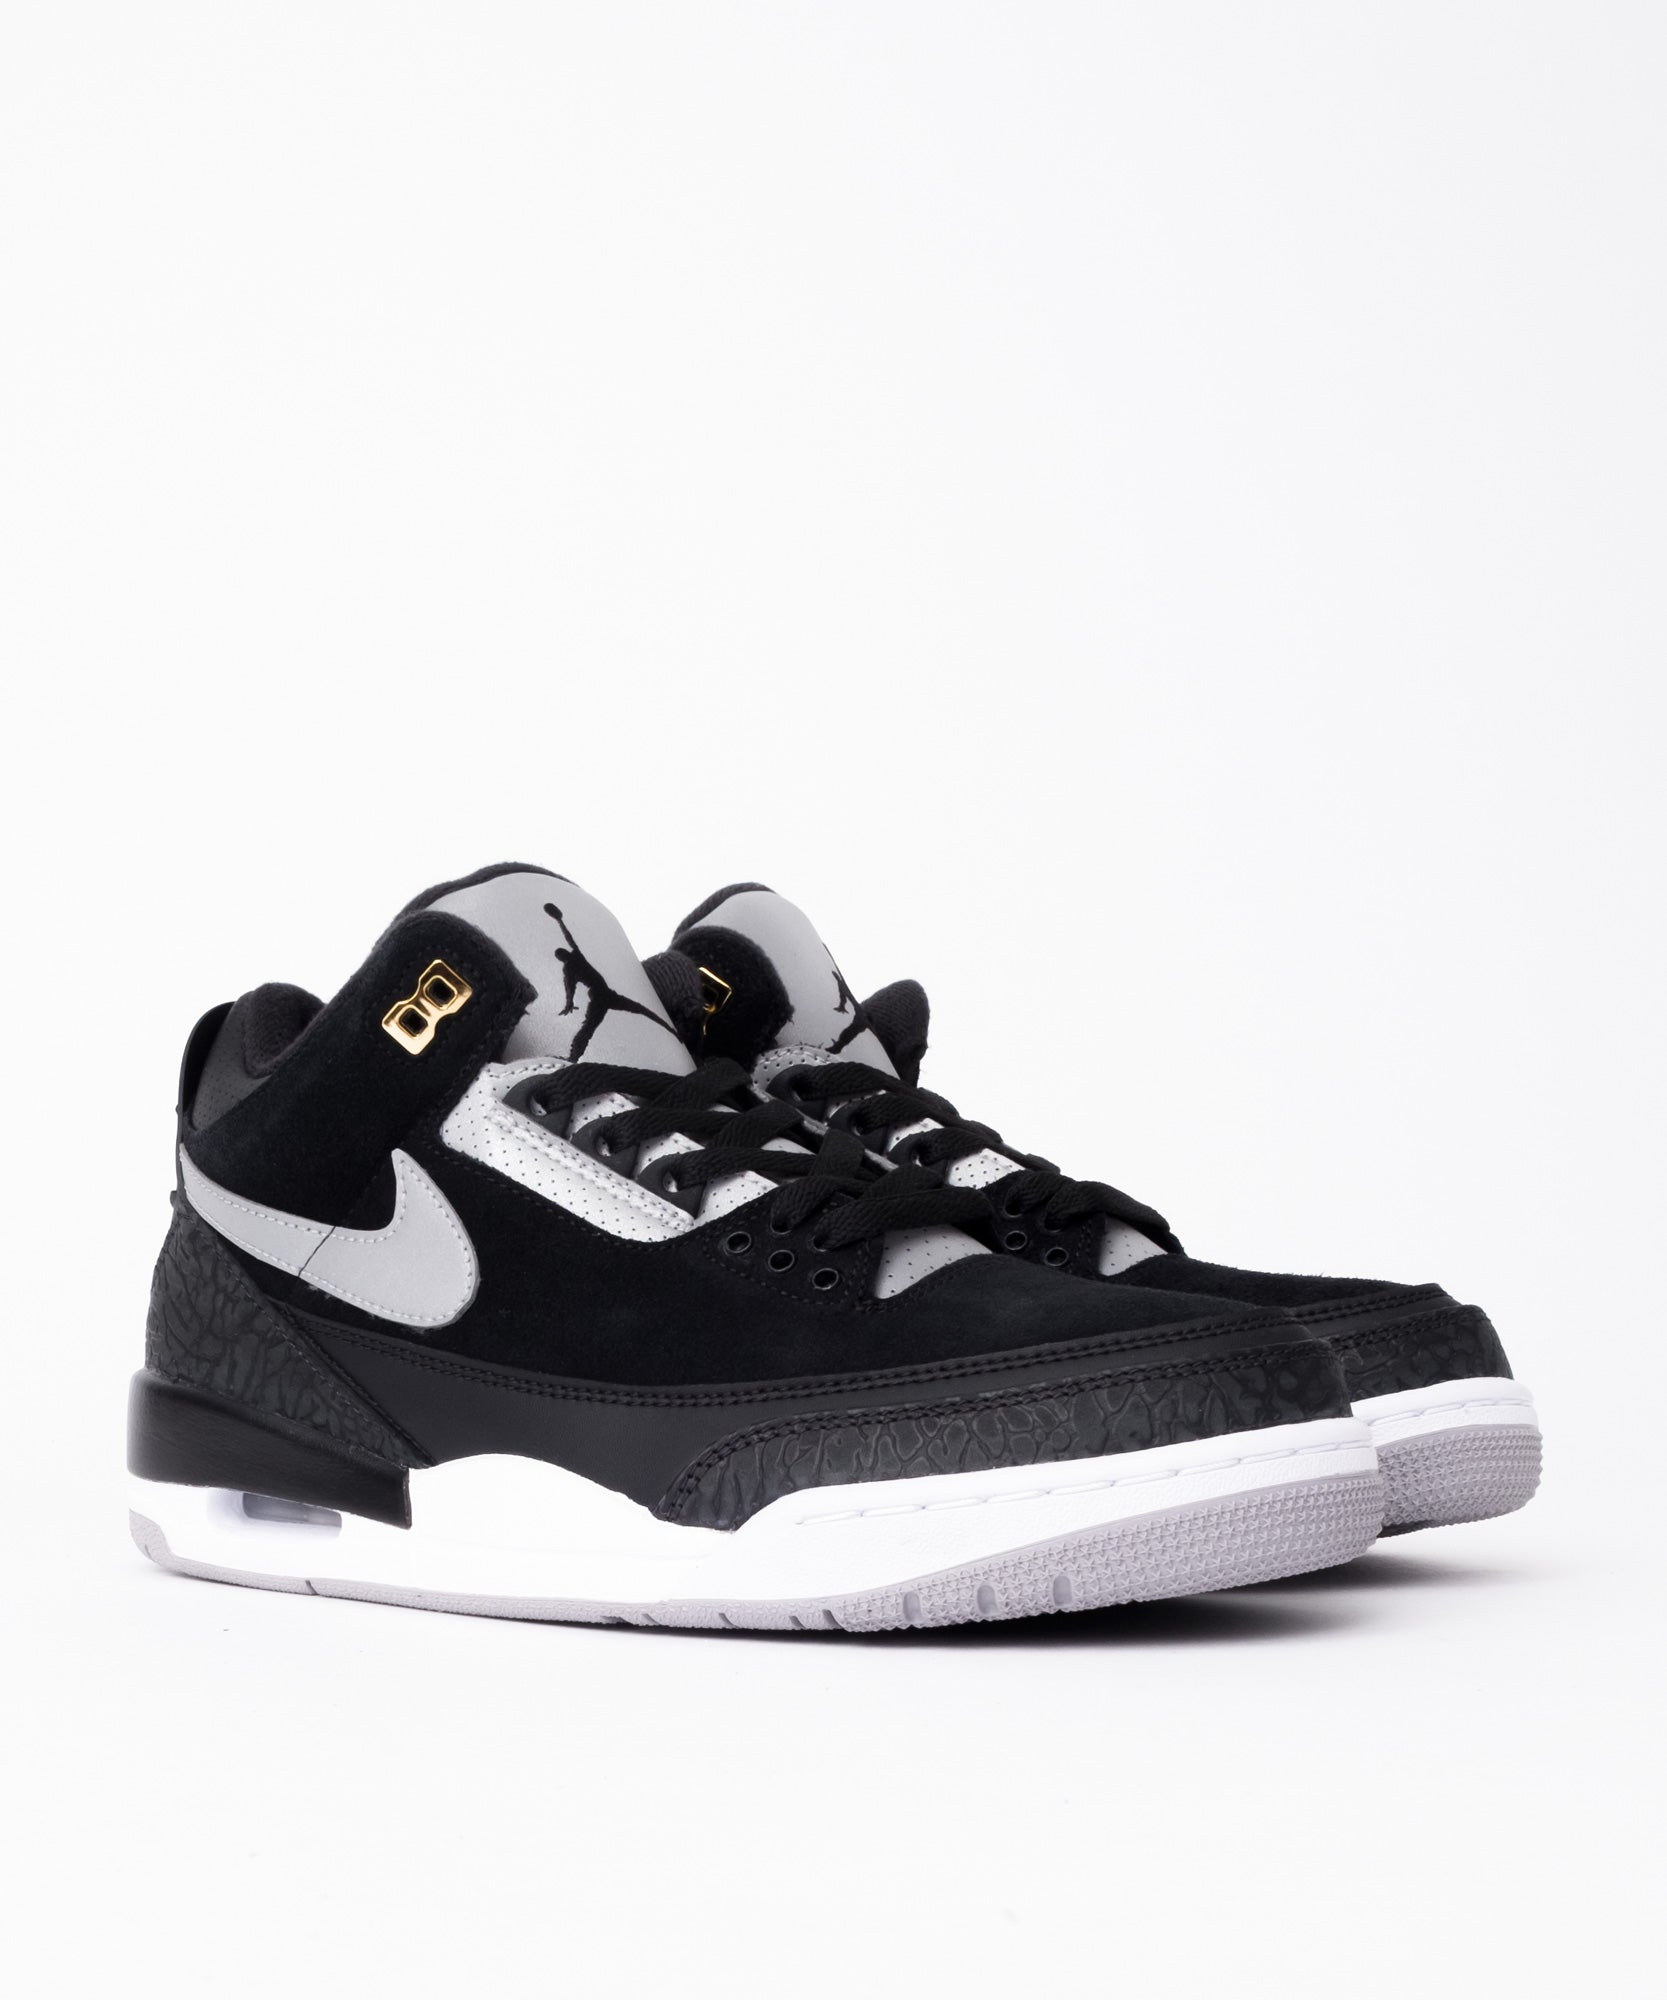 new concept 15913 d9fa0 Nike Air Jordan 3 Retro TH (Black/Cement Grey-Metallic Gold)